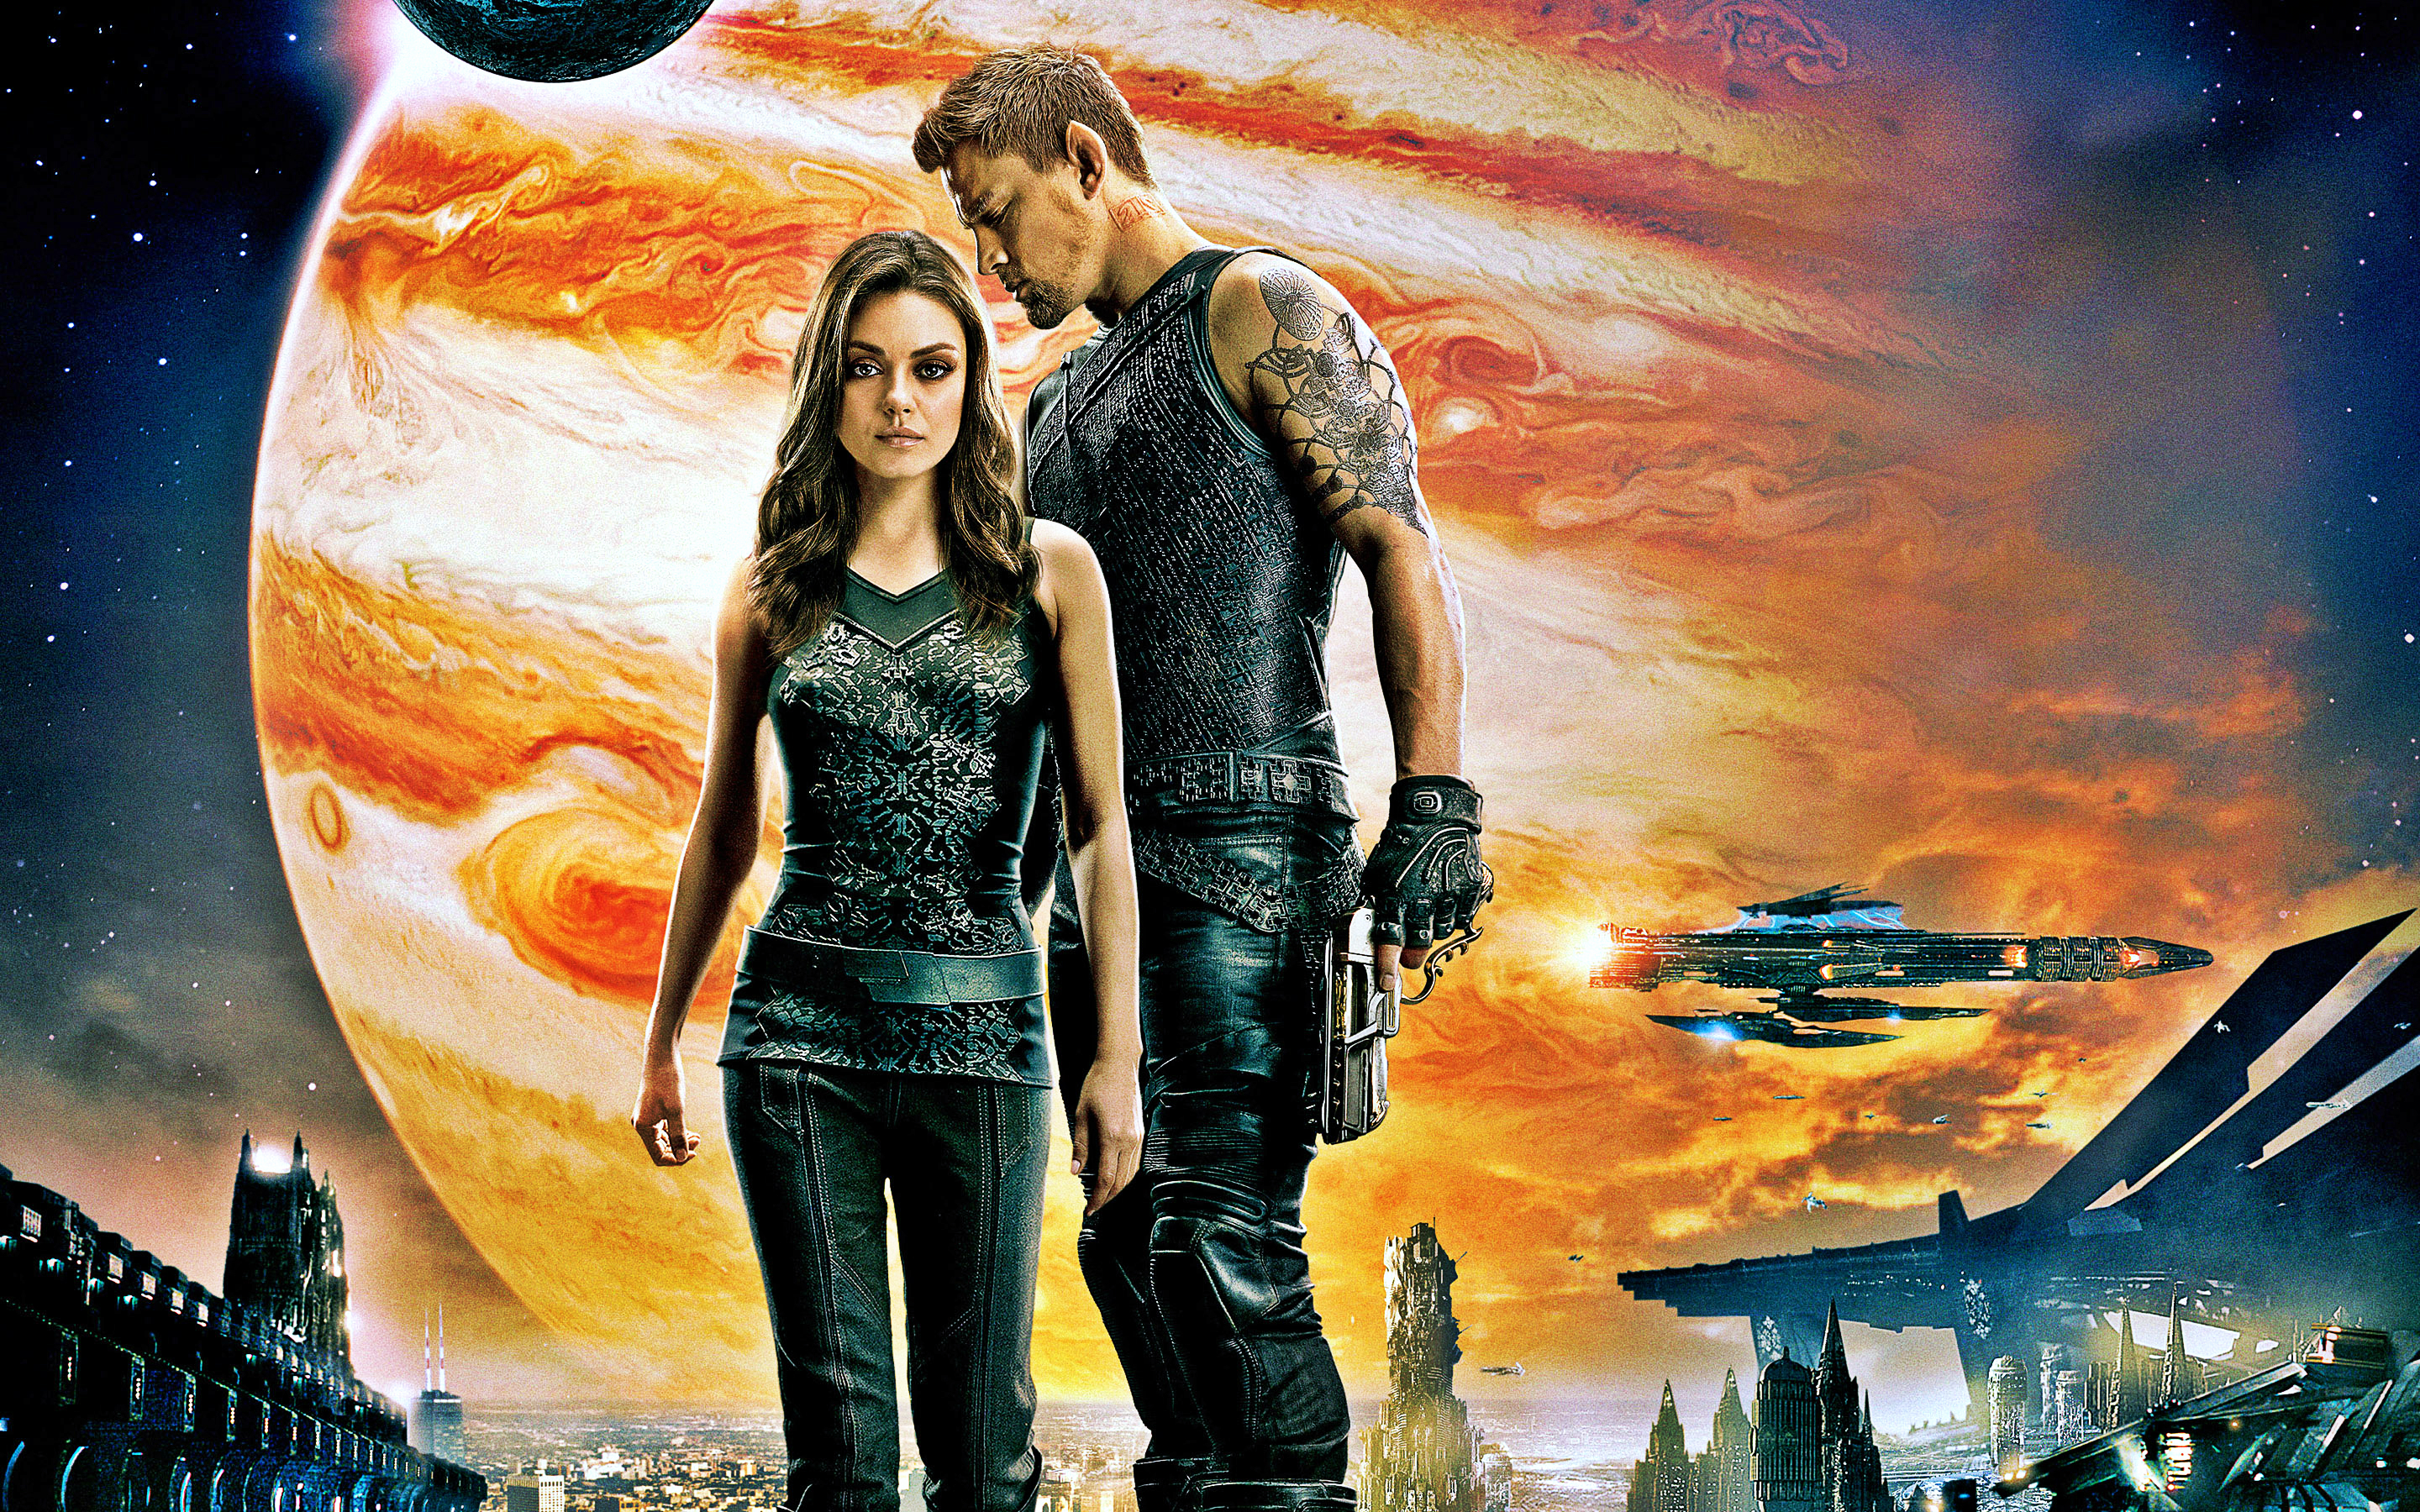 Movie Posters 2015: Could Jupiter Ascending Set A New Trend In Power Fantasy